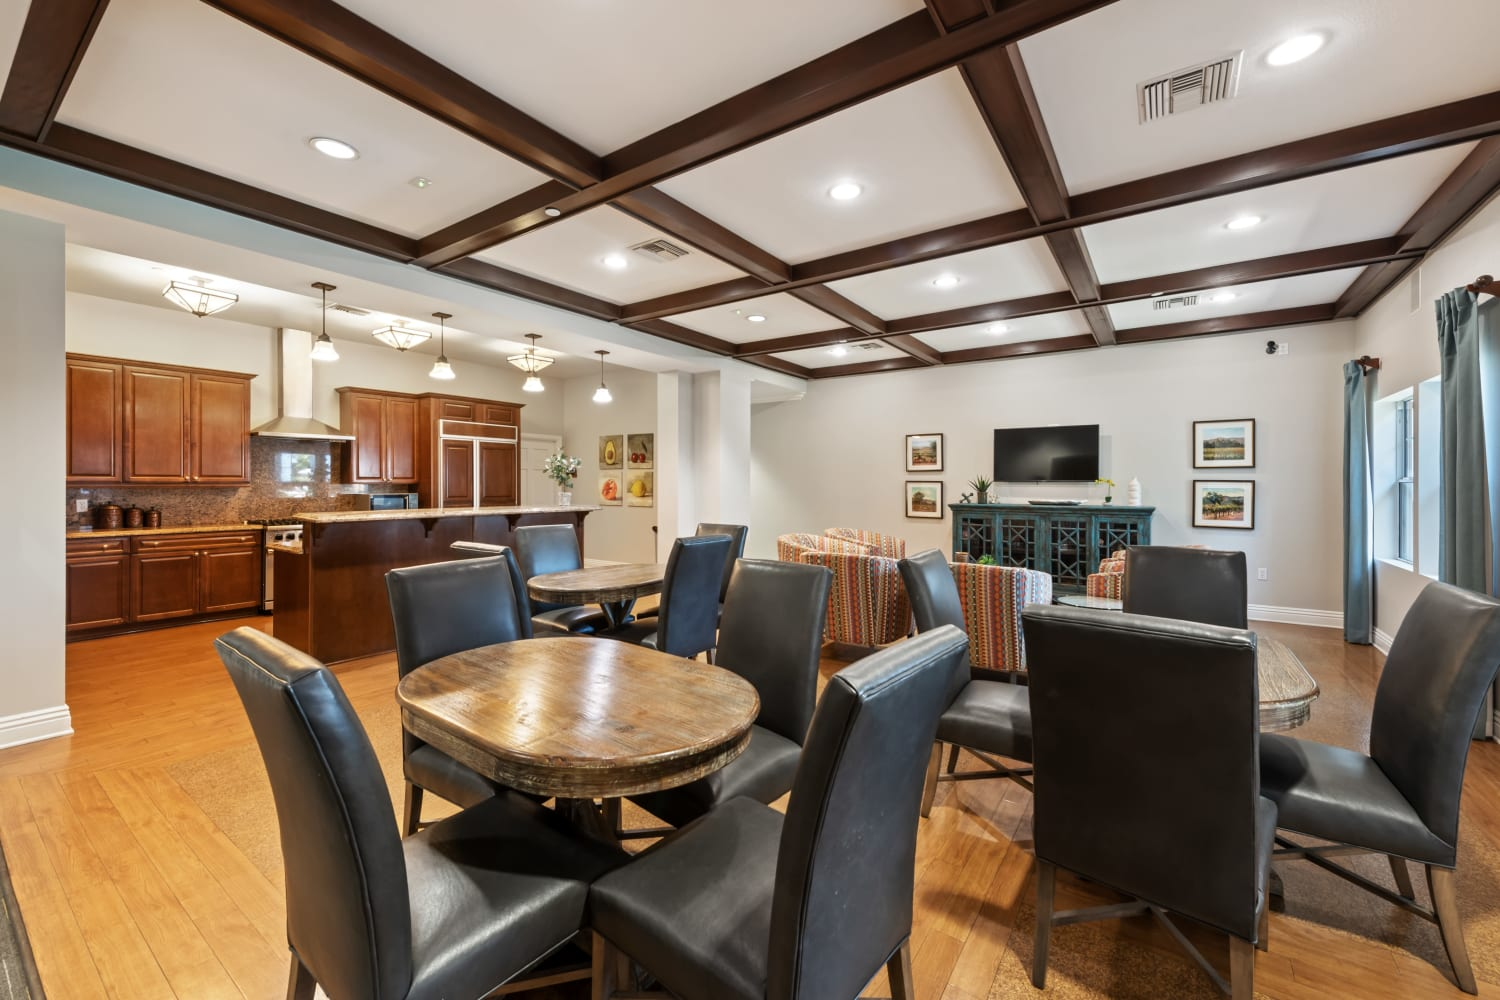 The Village on 5th offers a Luxury Clubhouse in Rancho Cucamonga, California